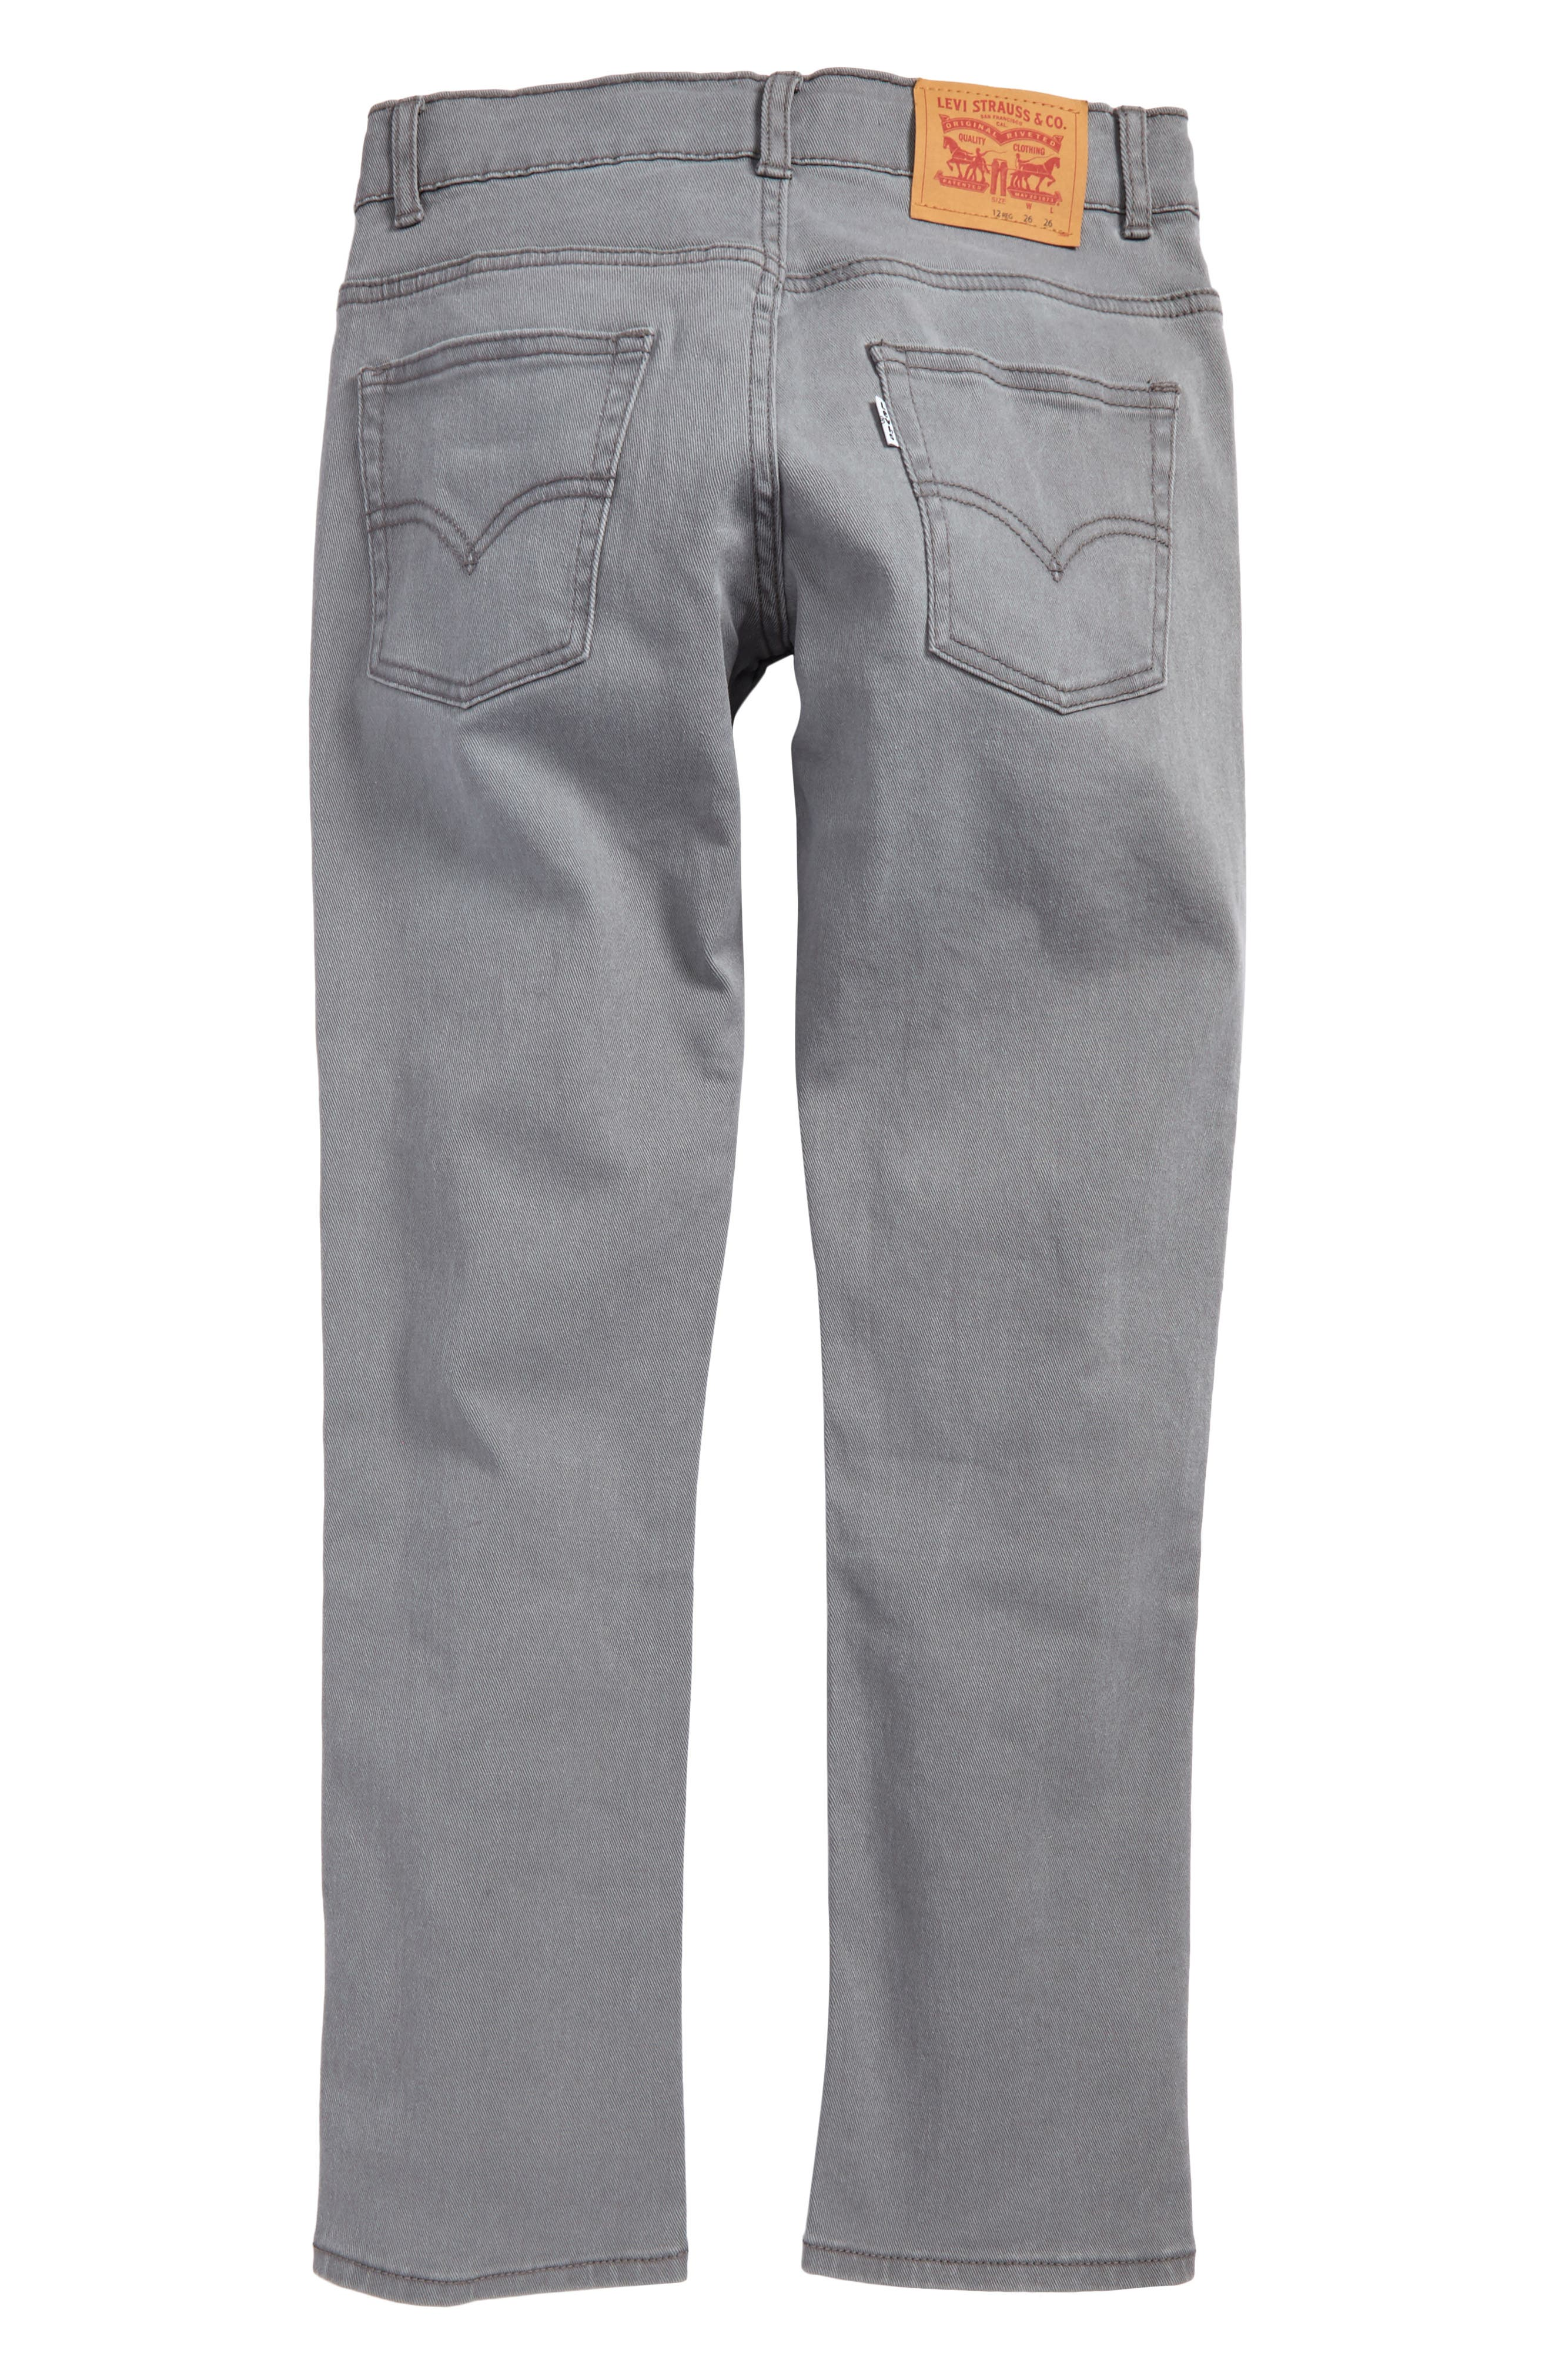 511 Slim Fit Jeans,                             Alternate thumbnail 2, color,                             Smoked Pearl